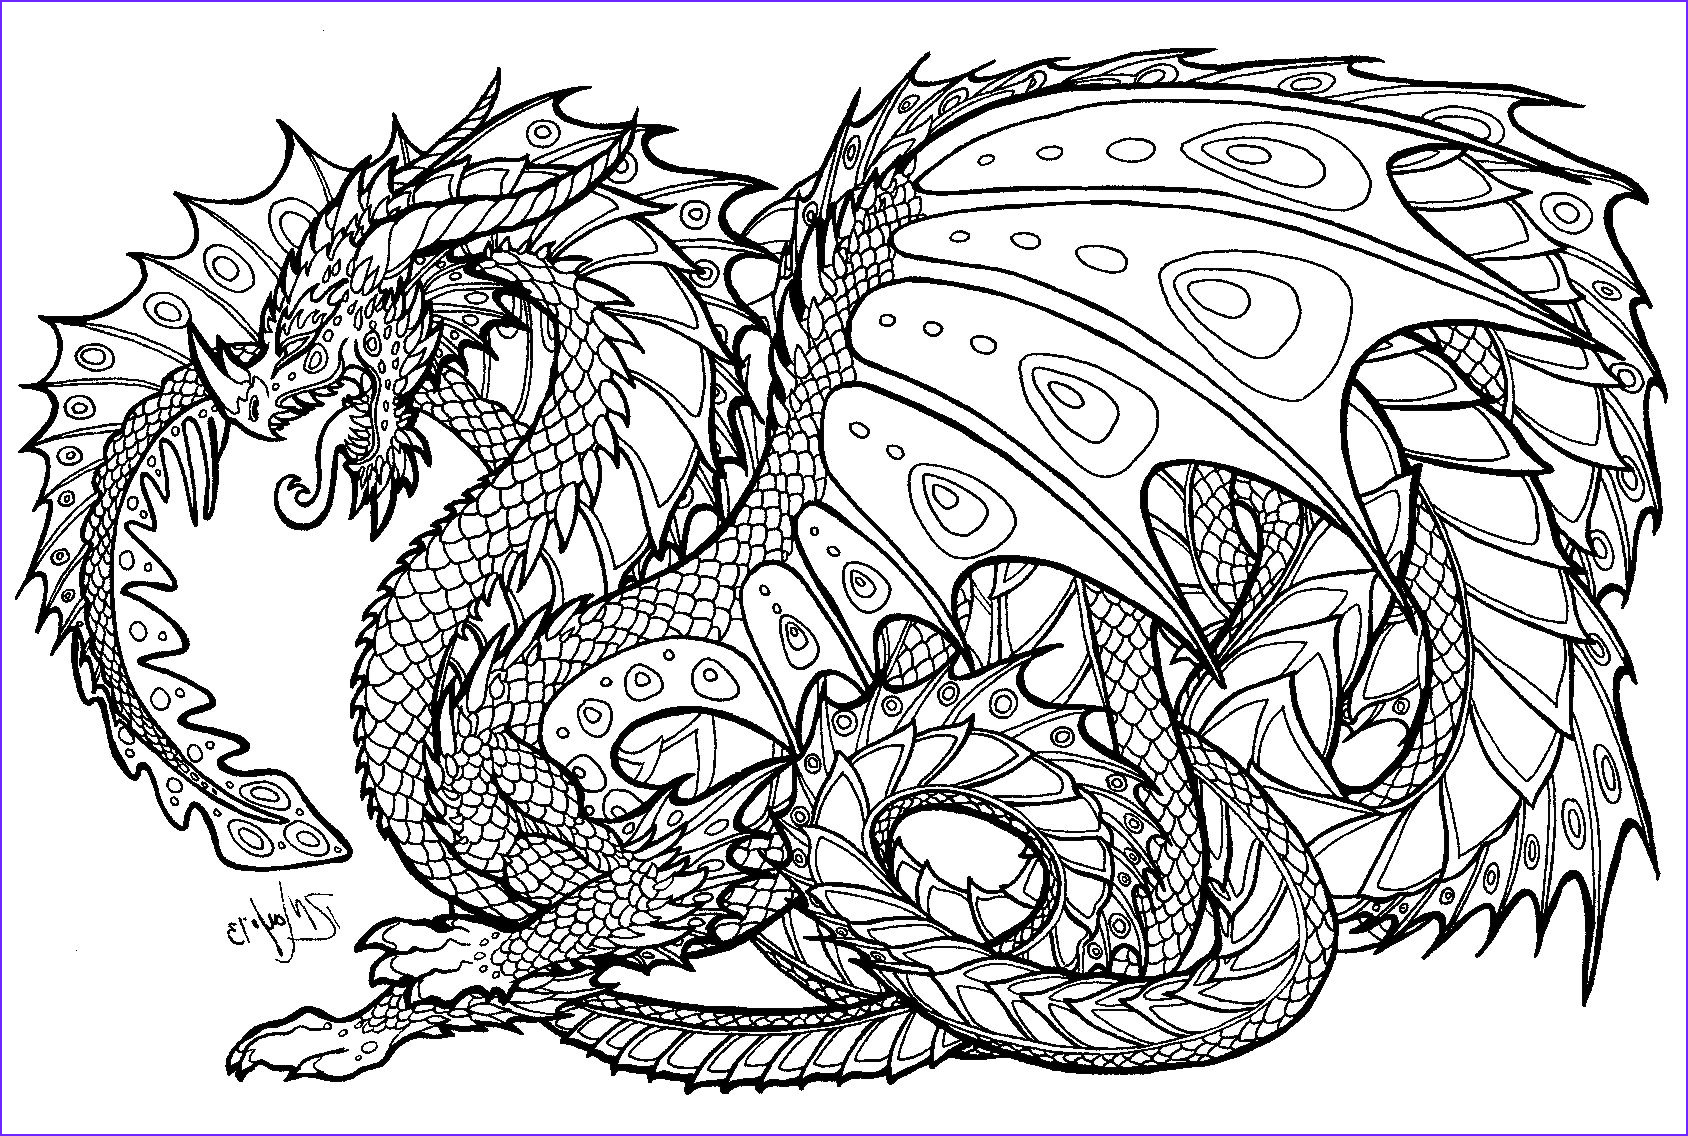 Free Printable Advanced Coloring Pages Elegant Photos Free Printable Coloring Pages for Adults Advanced Dragons